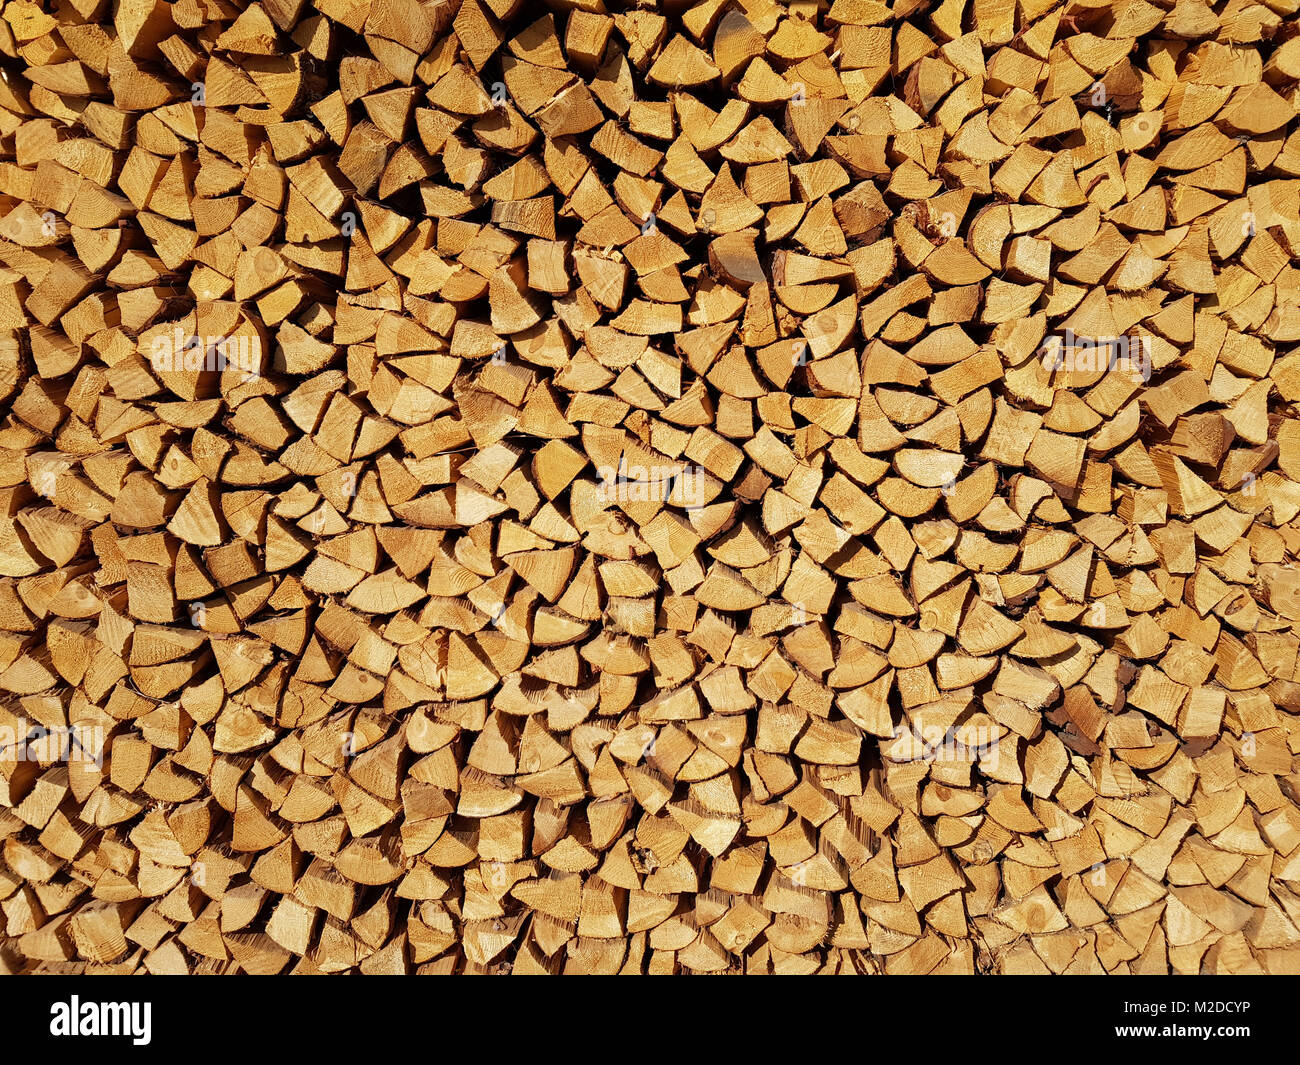 Cut and stacked a lot of firewood pieces as background. Stock Photo